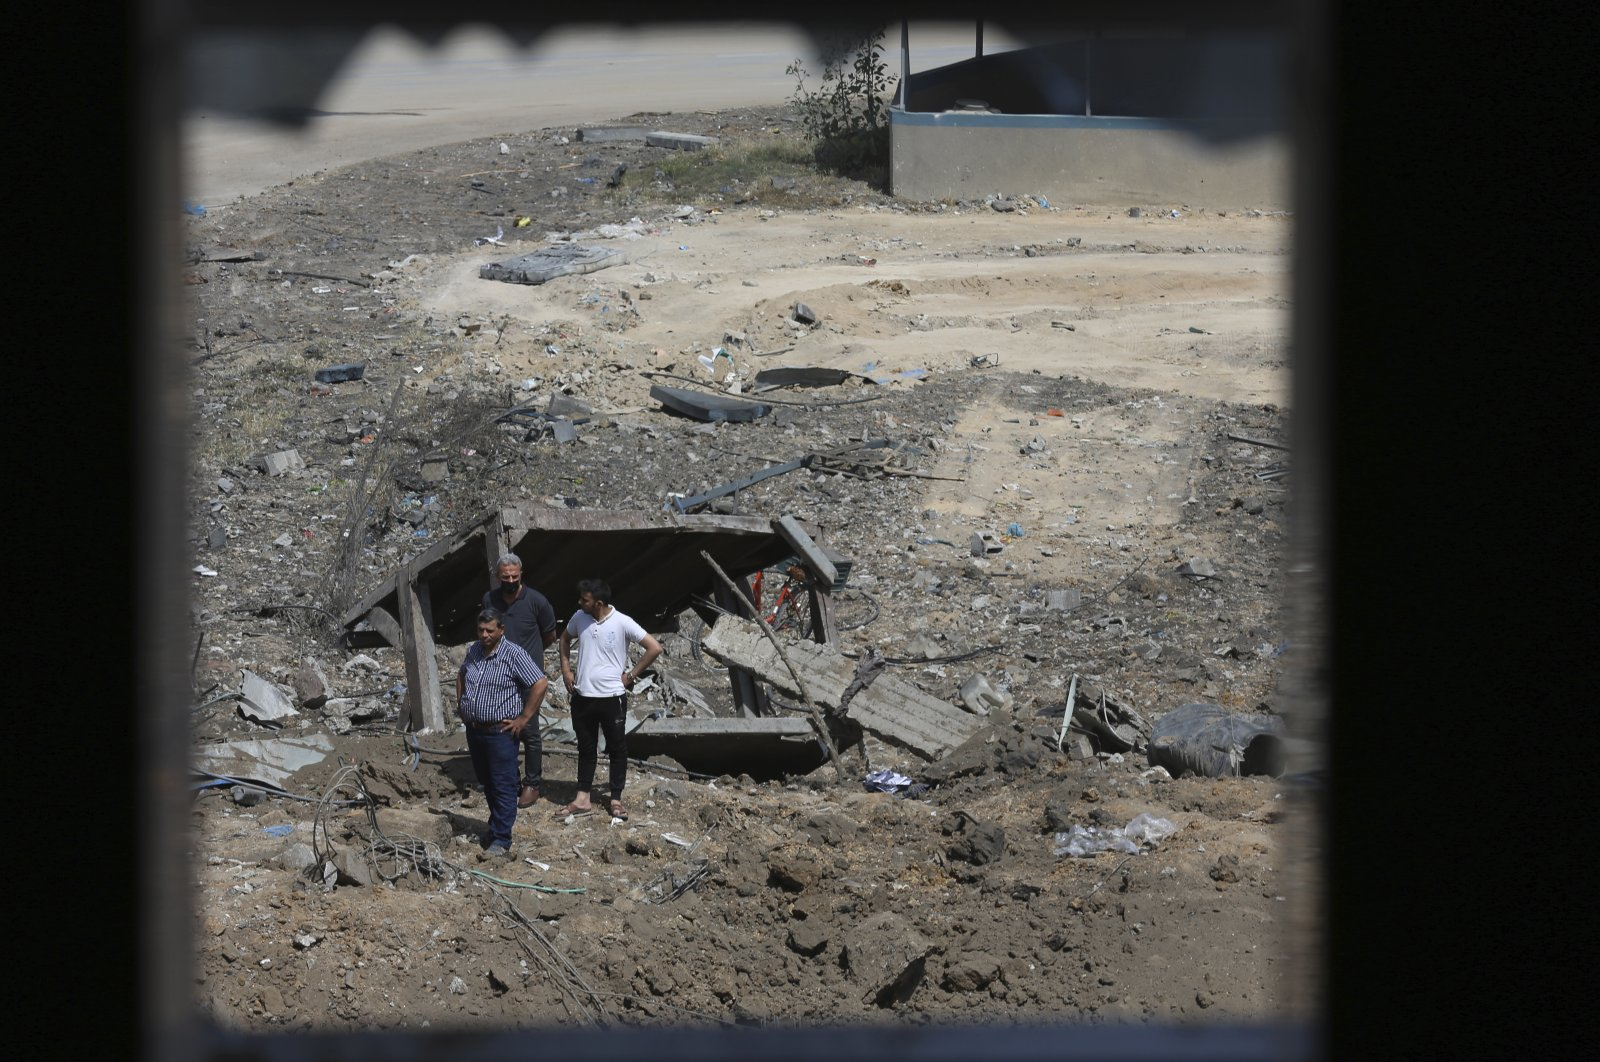 Palestinians inspect the rubble of an ice factory and mechanics garages destroyed by Israeli airstrikes, in Gaza City, Palestine, May 11, 2021. (AP Photo)